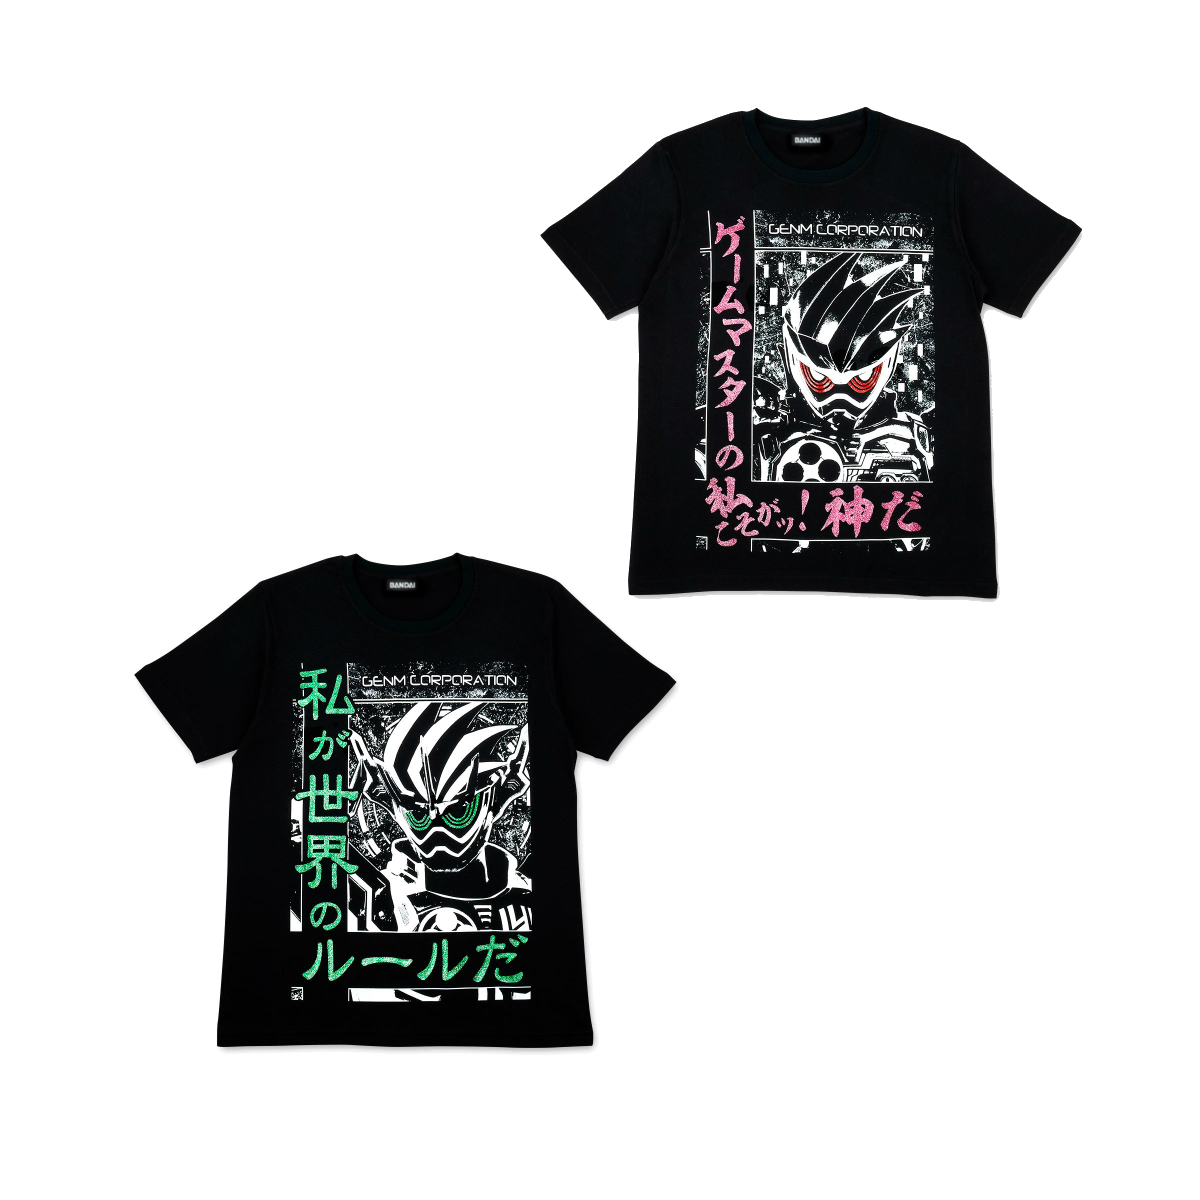 CEO Kamen Rider Decisive Quote T-shirts  (Kamen Rider Genm and Kamen Rider Cronus)